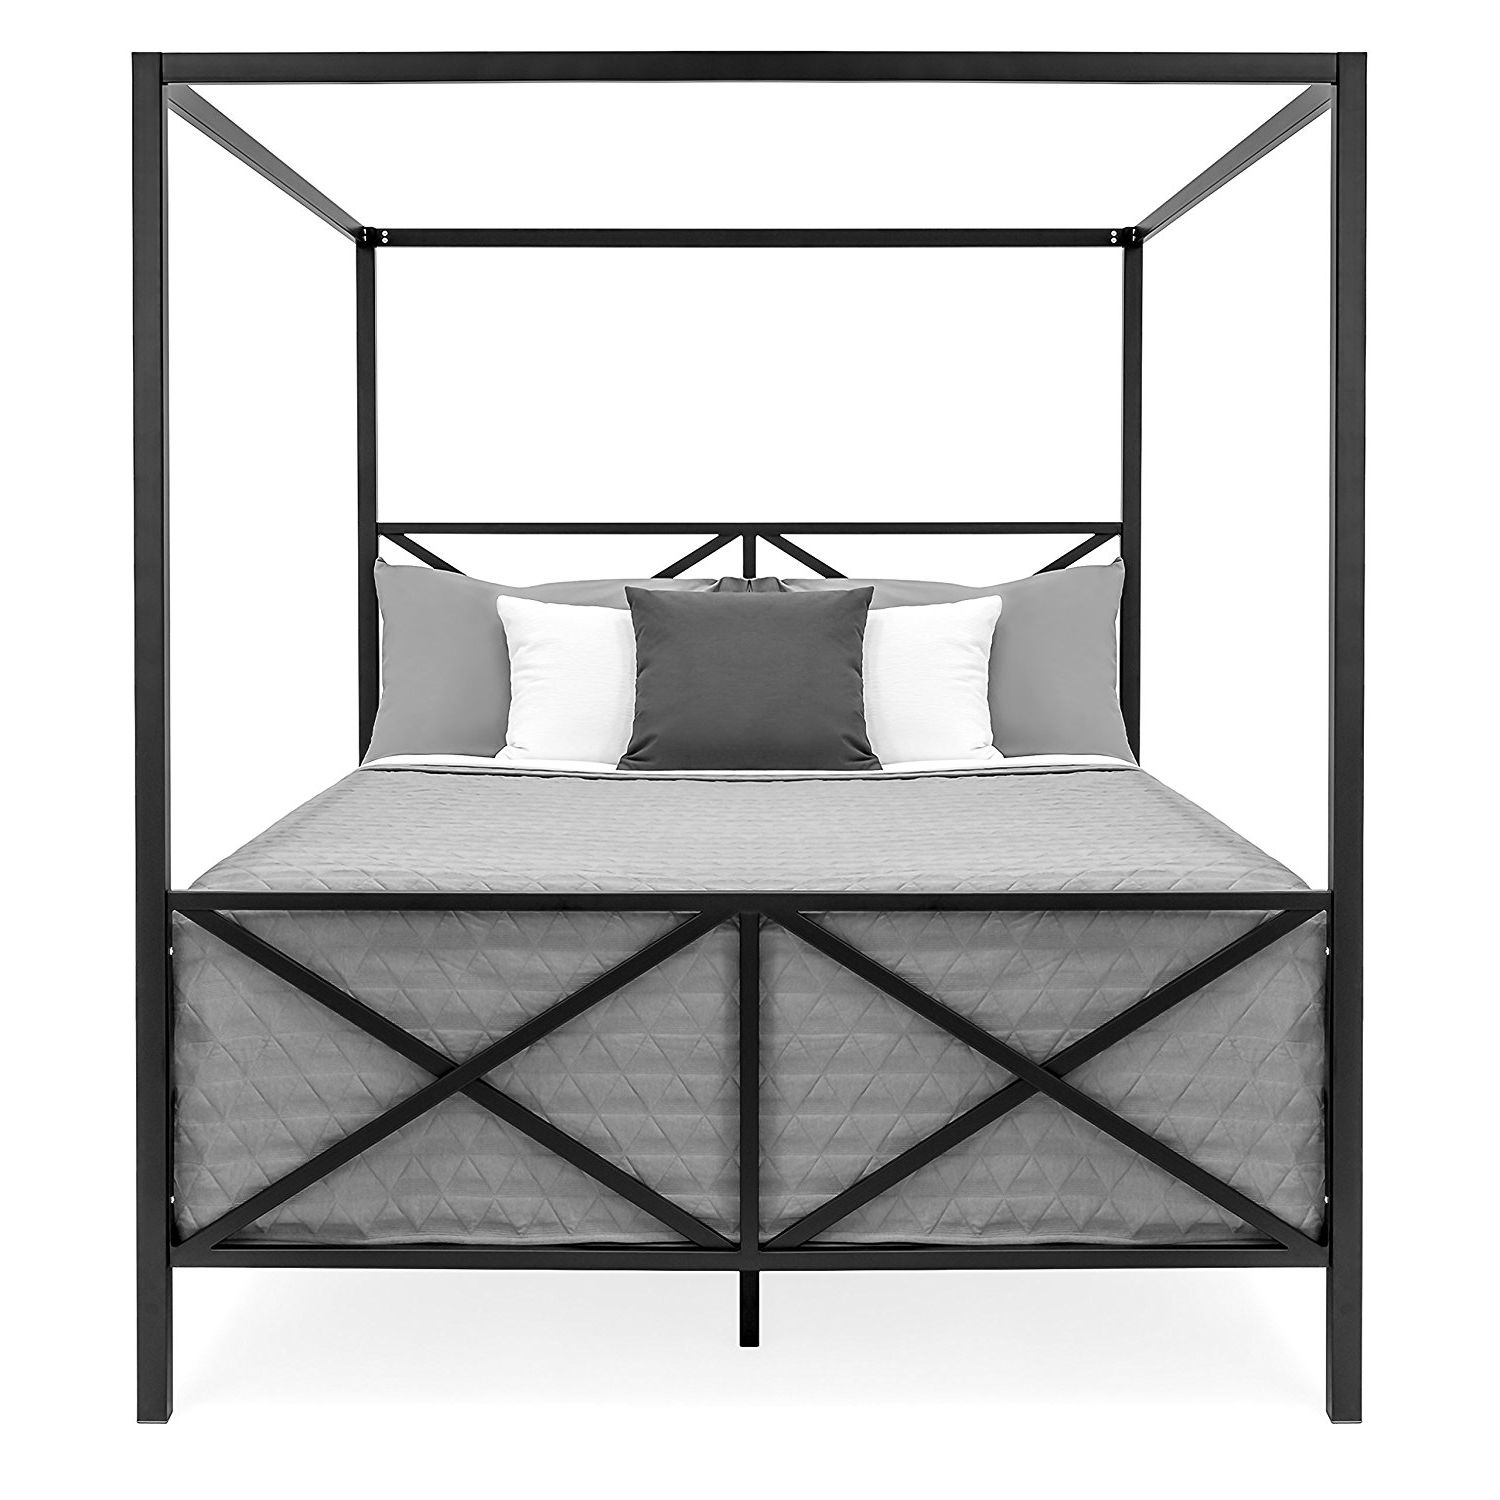 Queen Size 4 Post Canopy Bed Frame In Black Metal Finish Fastfurnishings Com